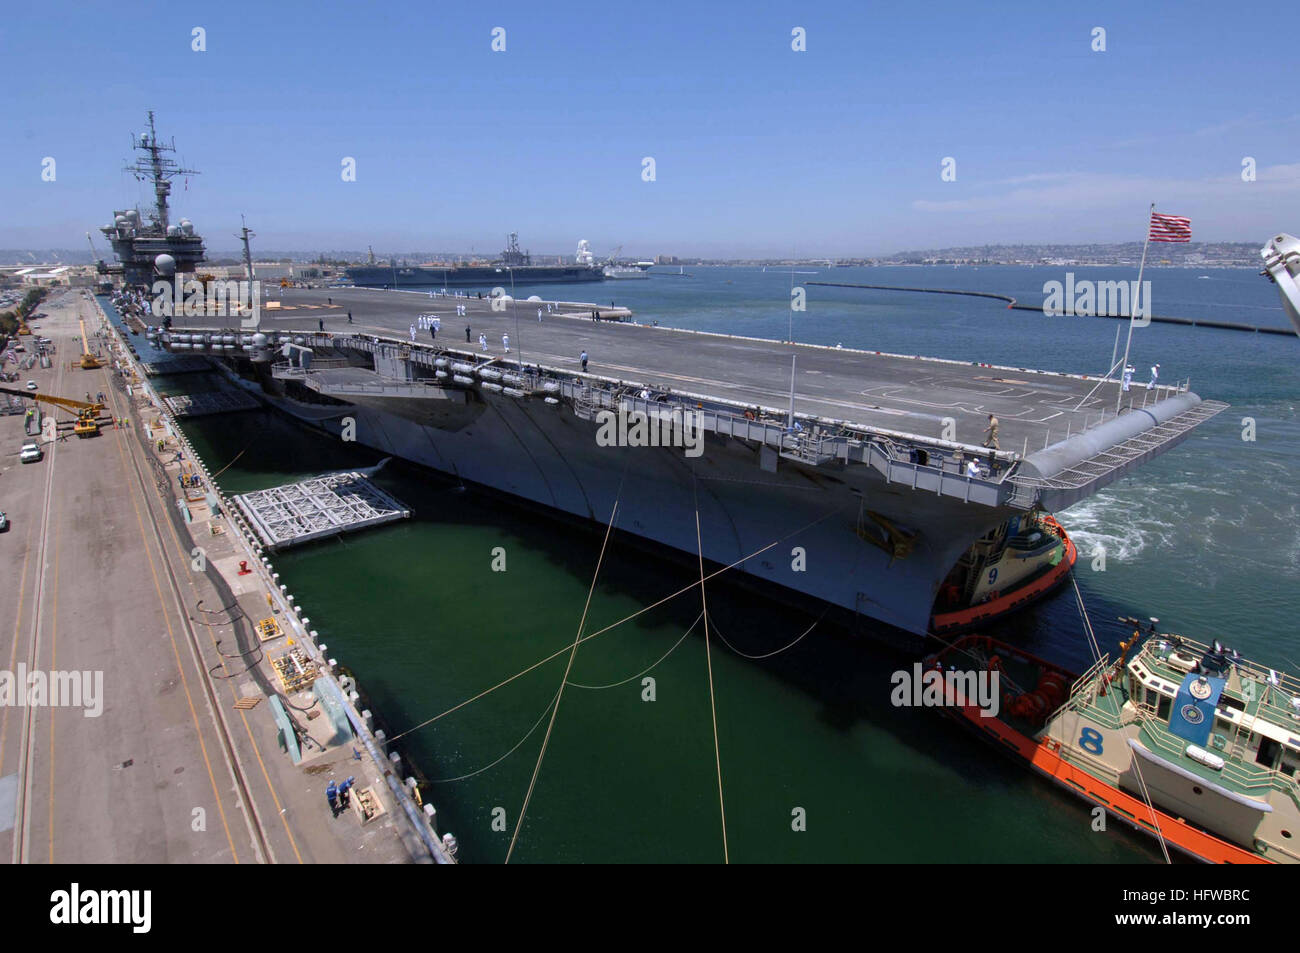 080807-N-6501M-001 SAN DIEGO (Aug. 7, 2008) The aircraft carrier USS Kitty Hawk (CV 63) arrives at Naval Air Station - Stock Image